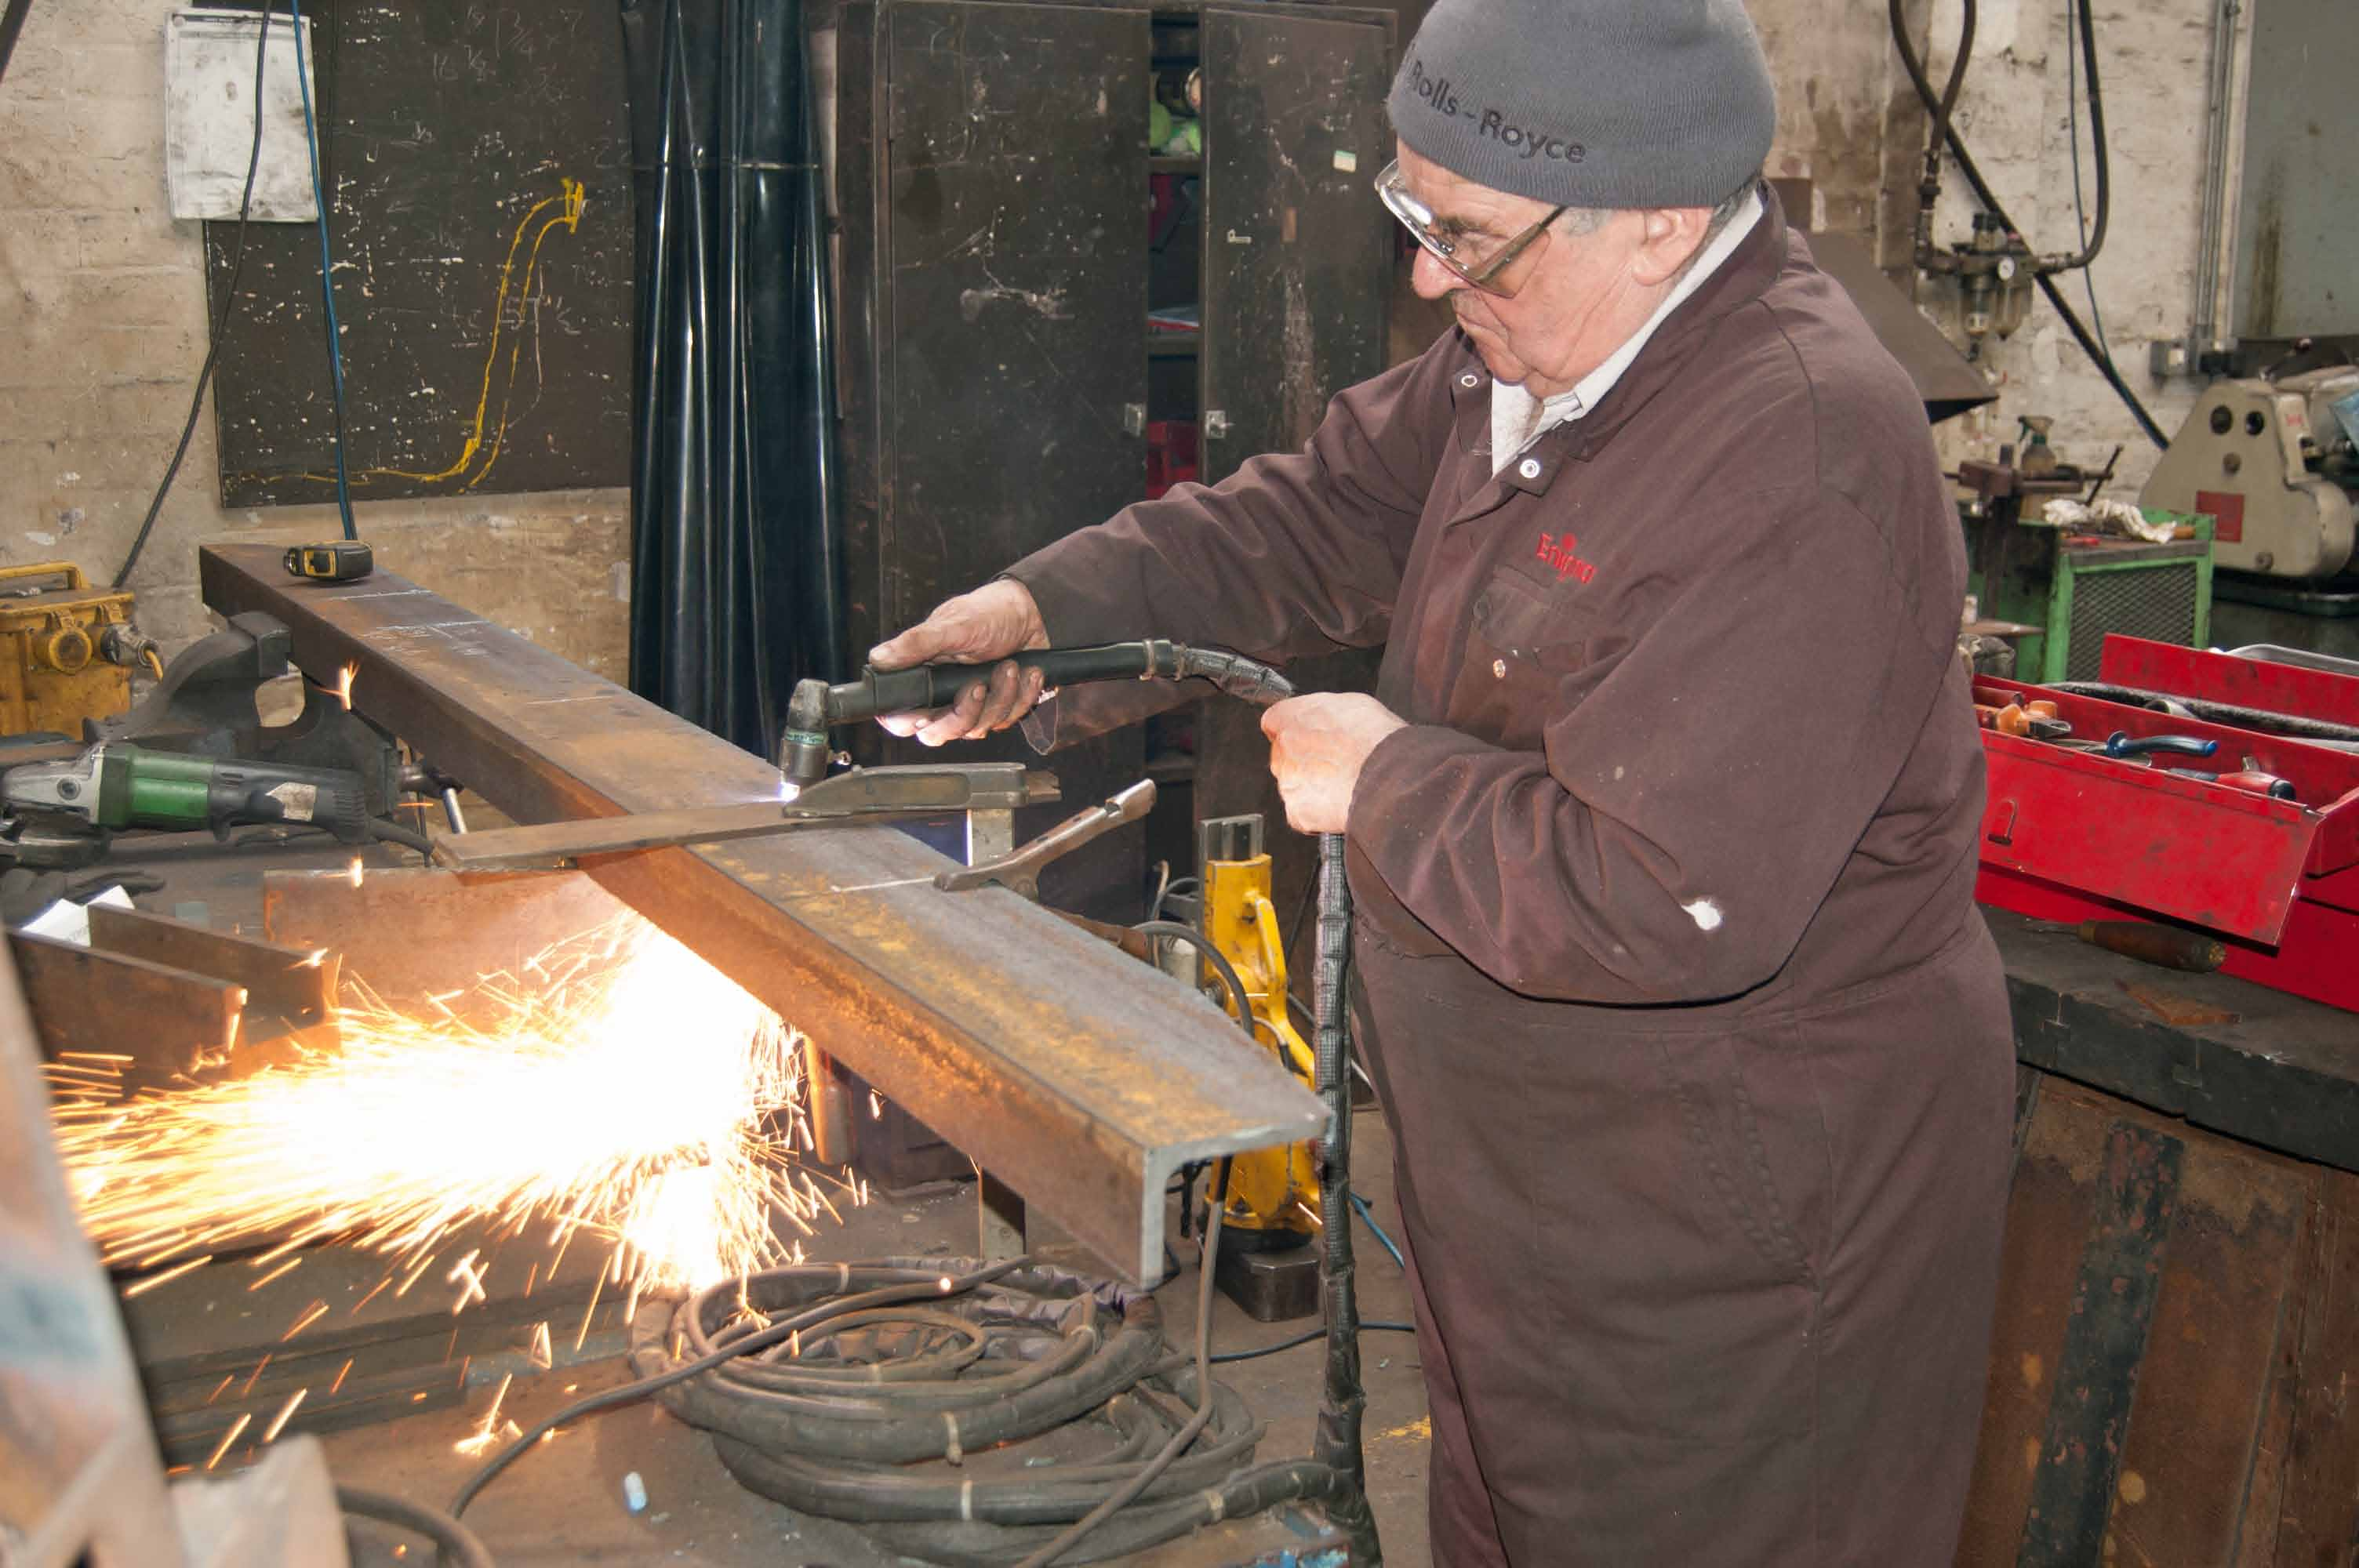 The plasma cutter is being used to cut the newly acquired piece of metal into shape